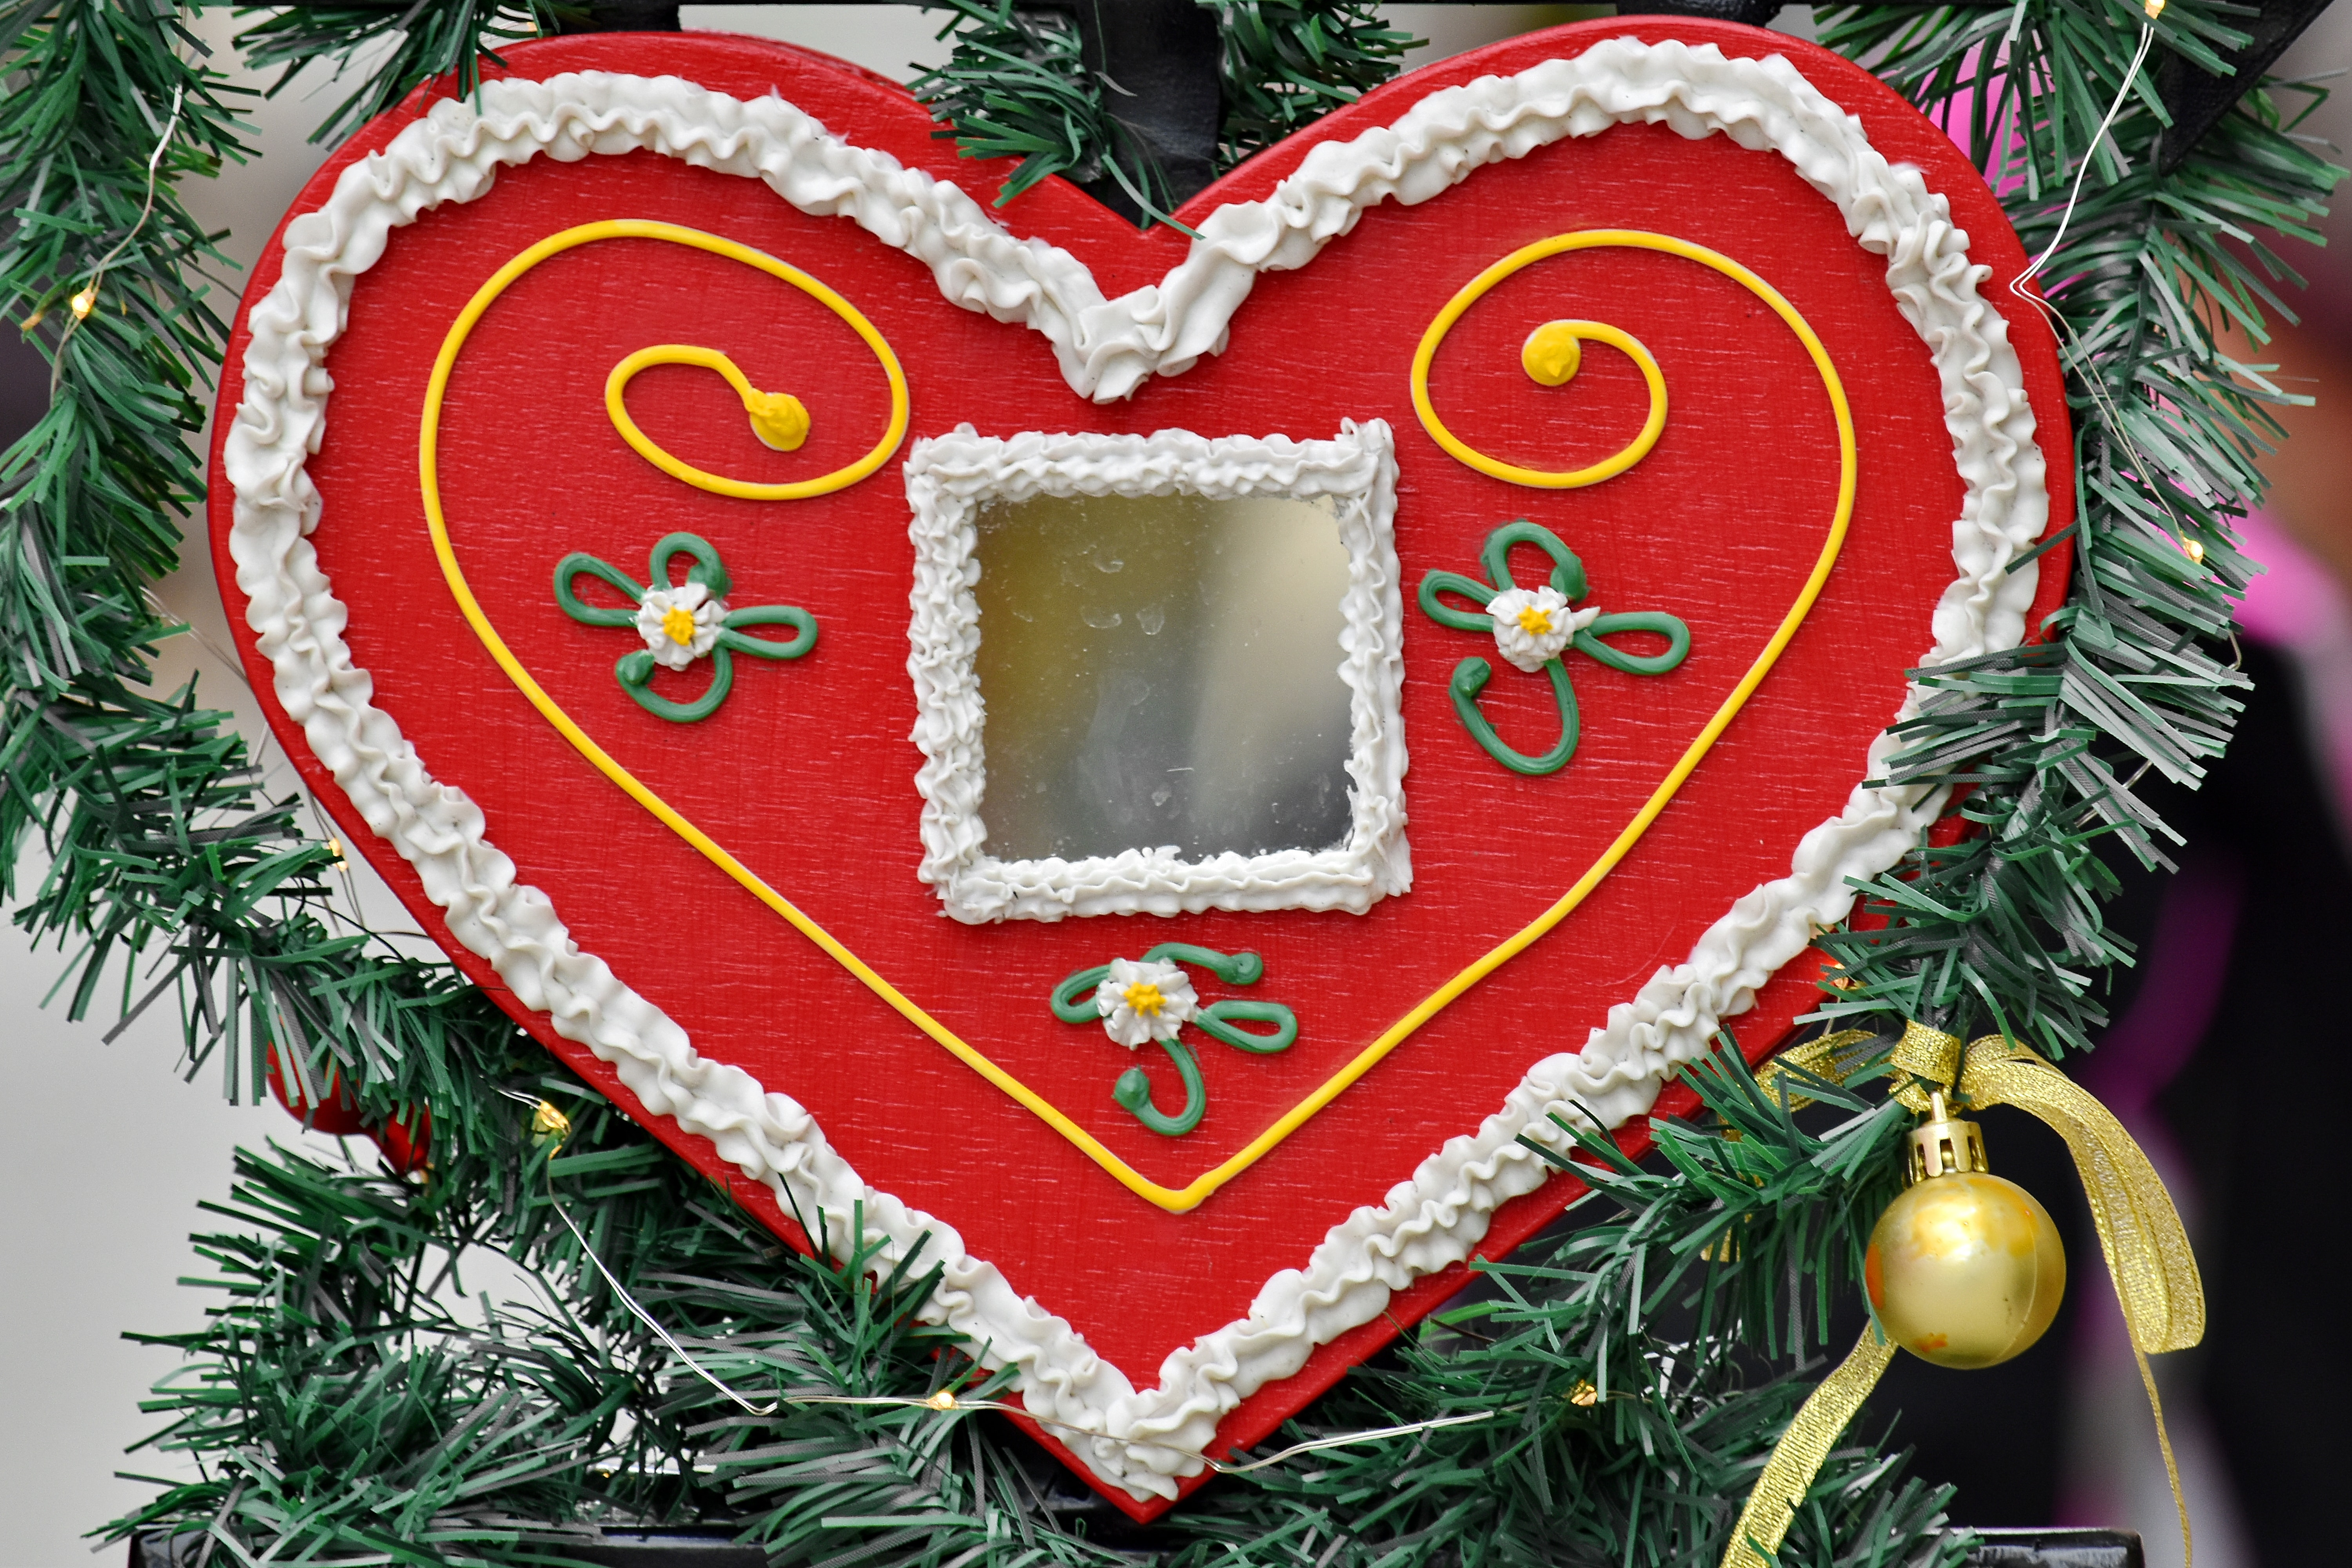 Free Picture Candy Christmas Tree Decoration Gingerbread Handmade Heart Love Mirror Romance Celebration